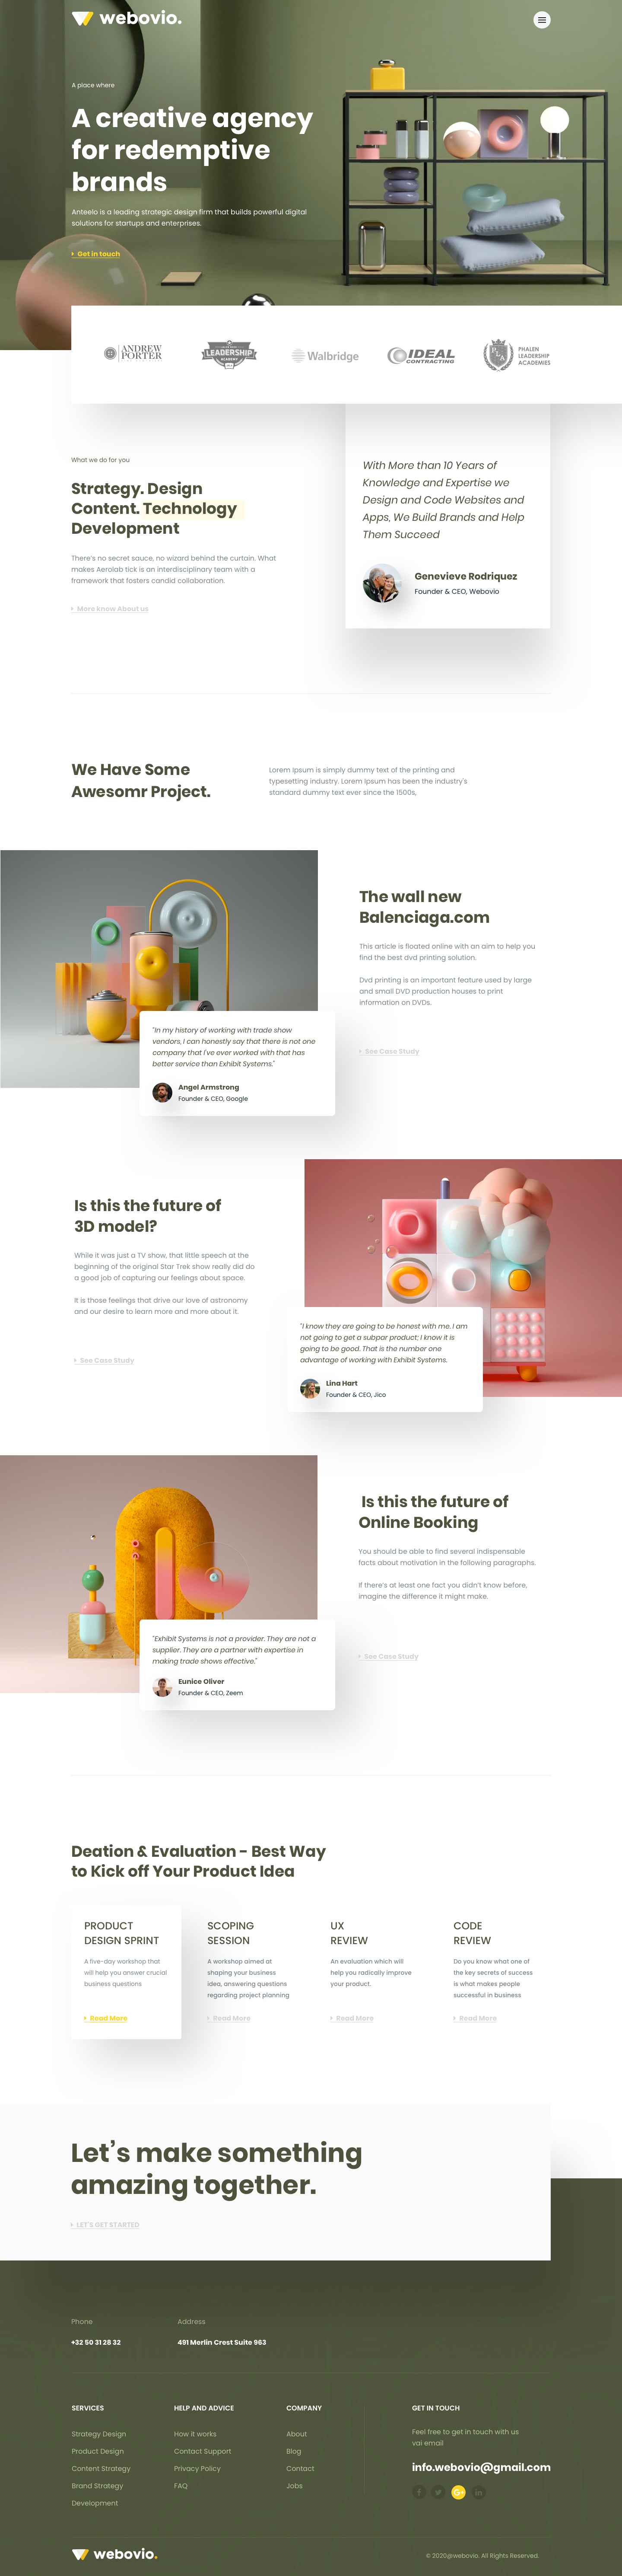 Webovio - Creative Agency Landing Page - Elegant and clean landing page desing for creative agency.